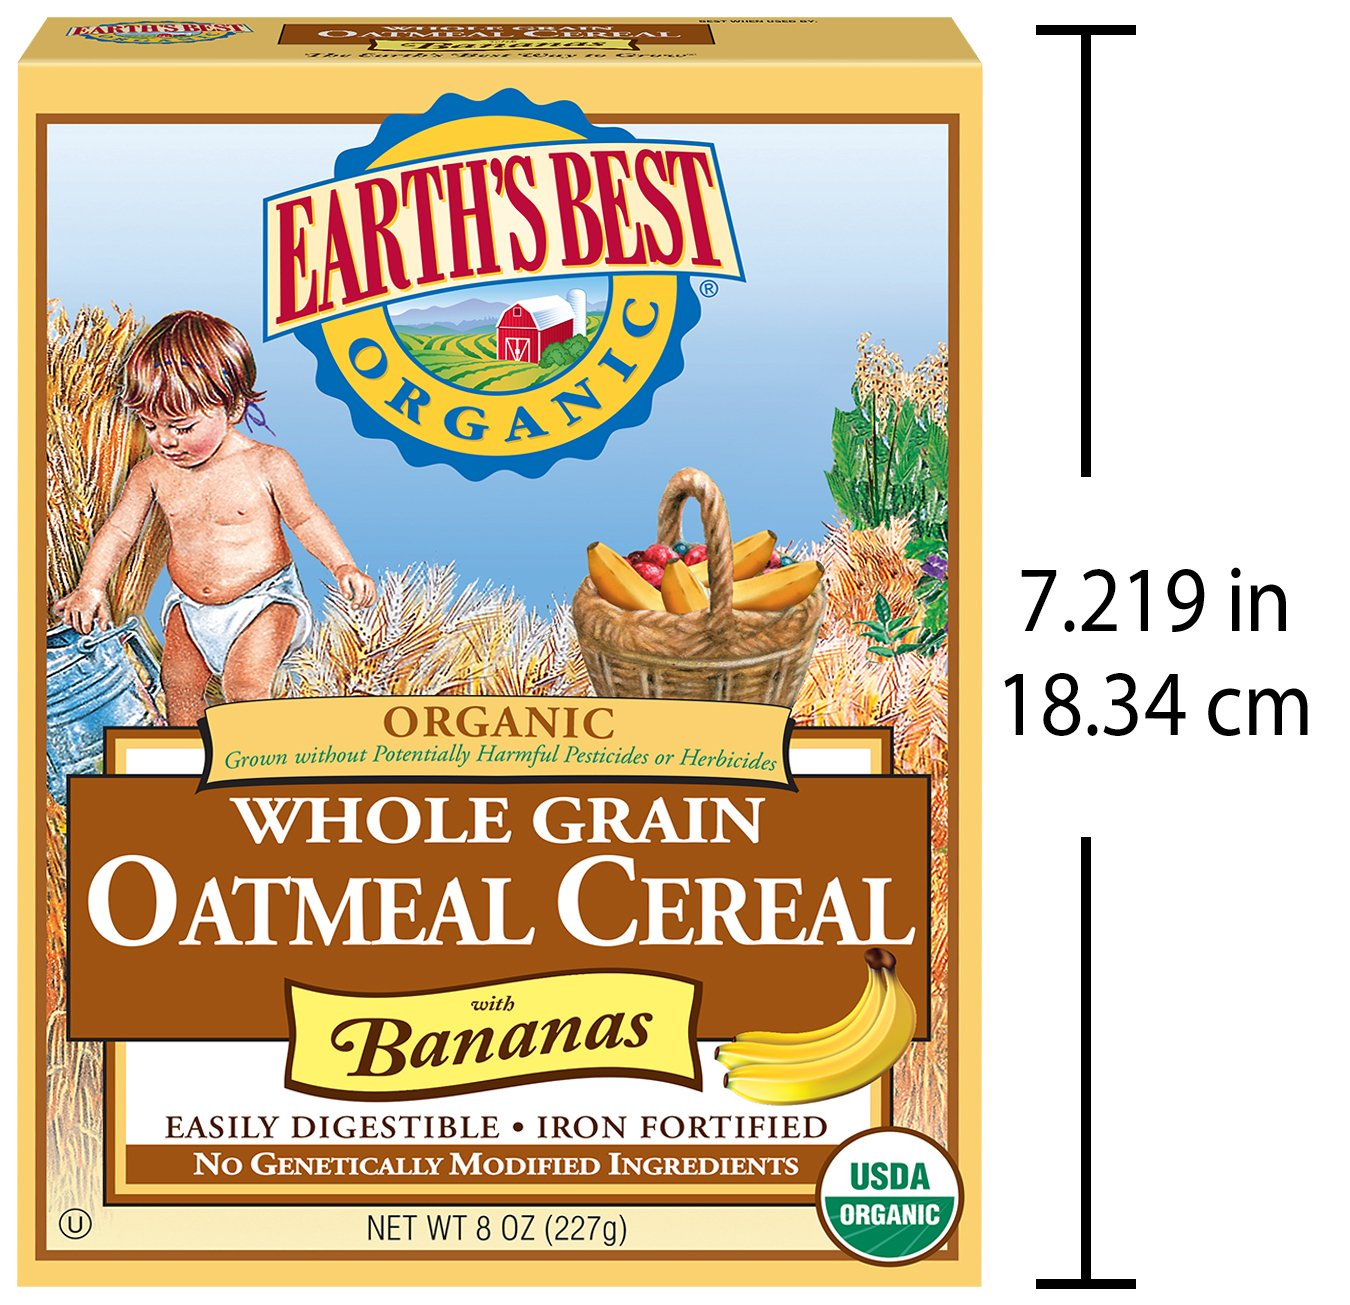 Earth's Best Organic Infant Cereal, Whole Grain Oatmeal with Bananas, 8 oz. Box by Earth's Best (Image #6)